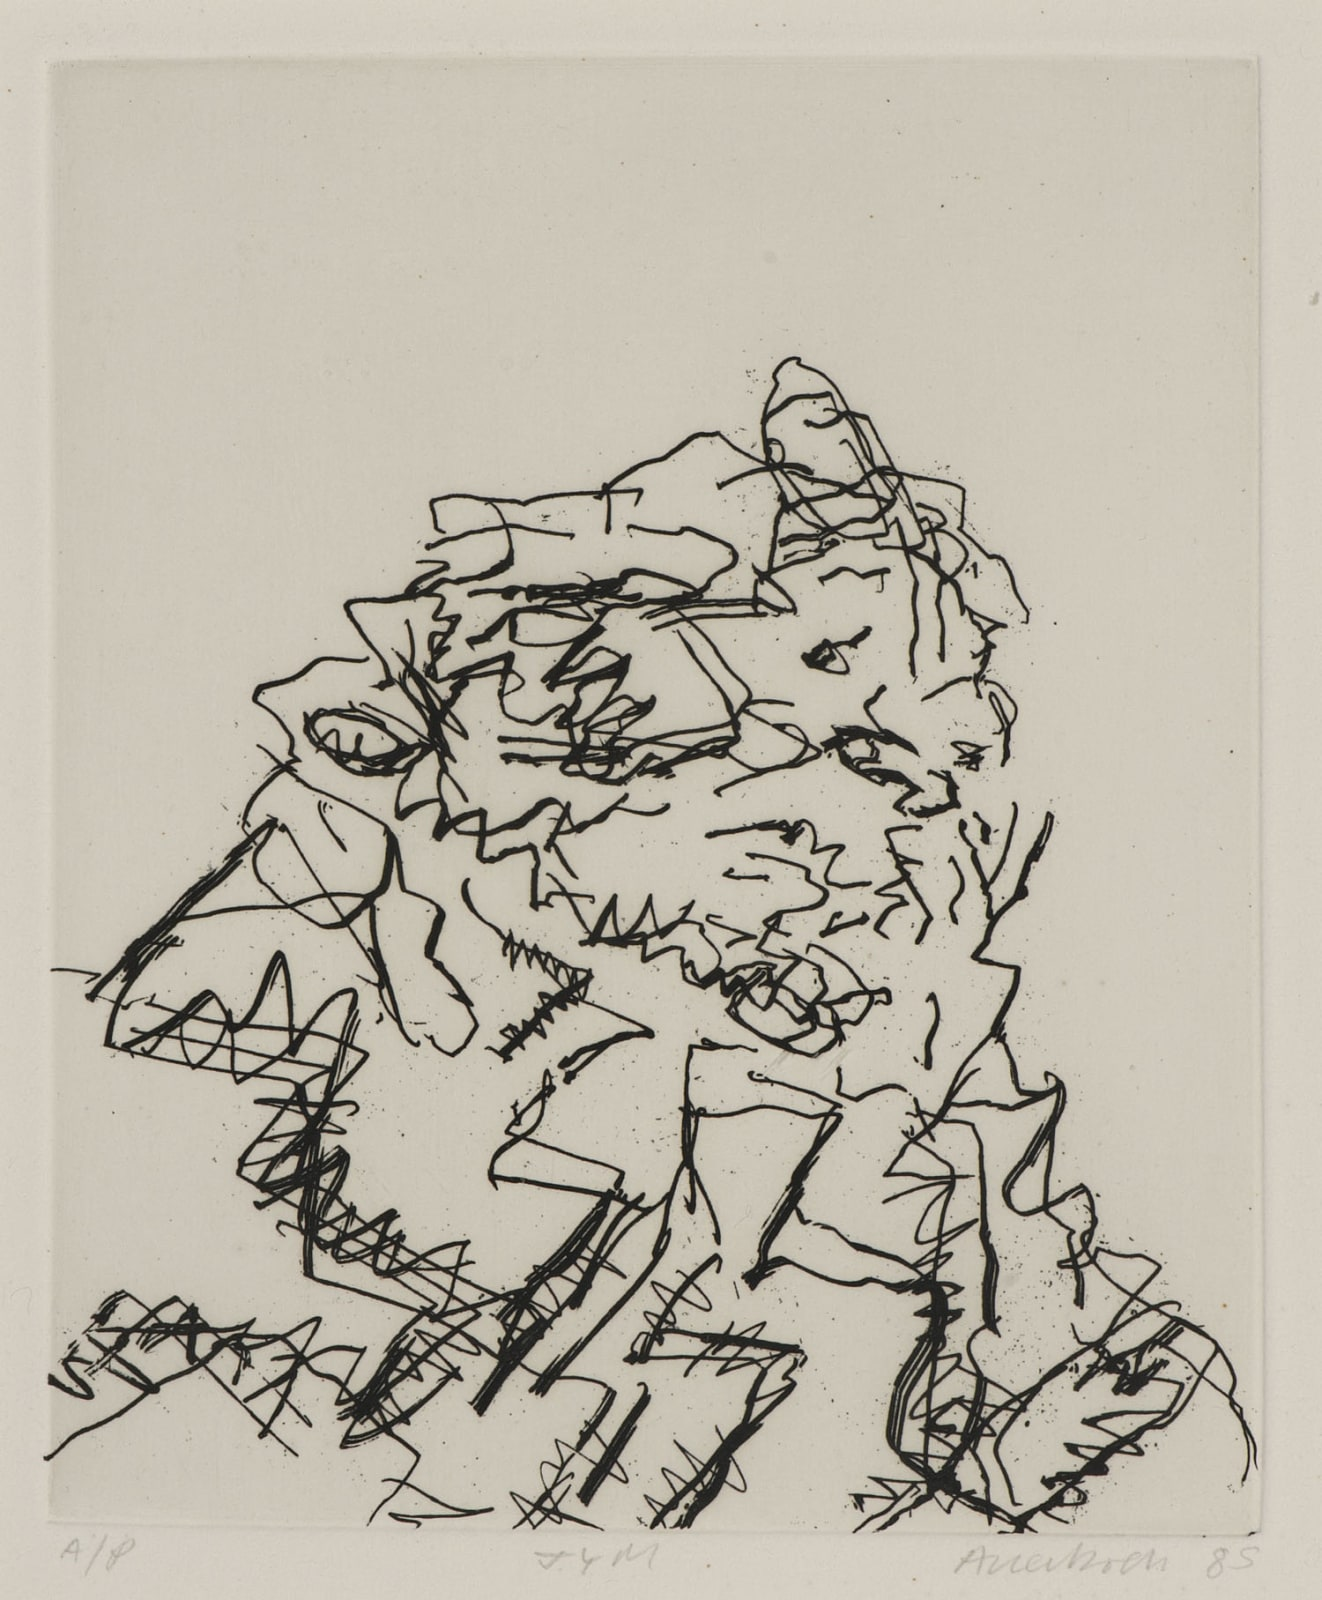 Frank Auerbach (1931-) J.Y.M. 1989 Etching, printed on Somerset white paper Artist's proof outside the published edition of 50 20 x 16.5 cm Ben Uri Collection © Frank Auerbach, courtesy of Marlborough Fine Art To see and discover more about this artist click here